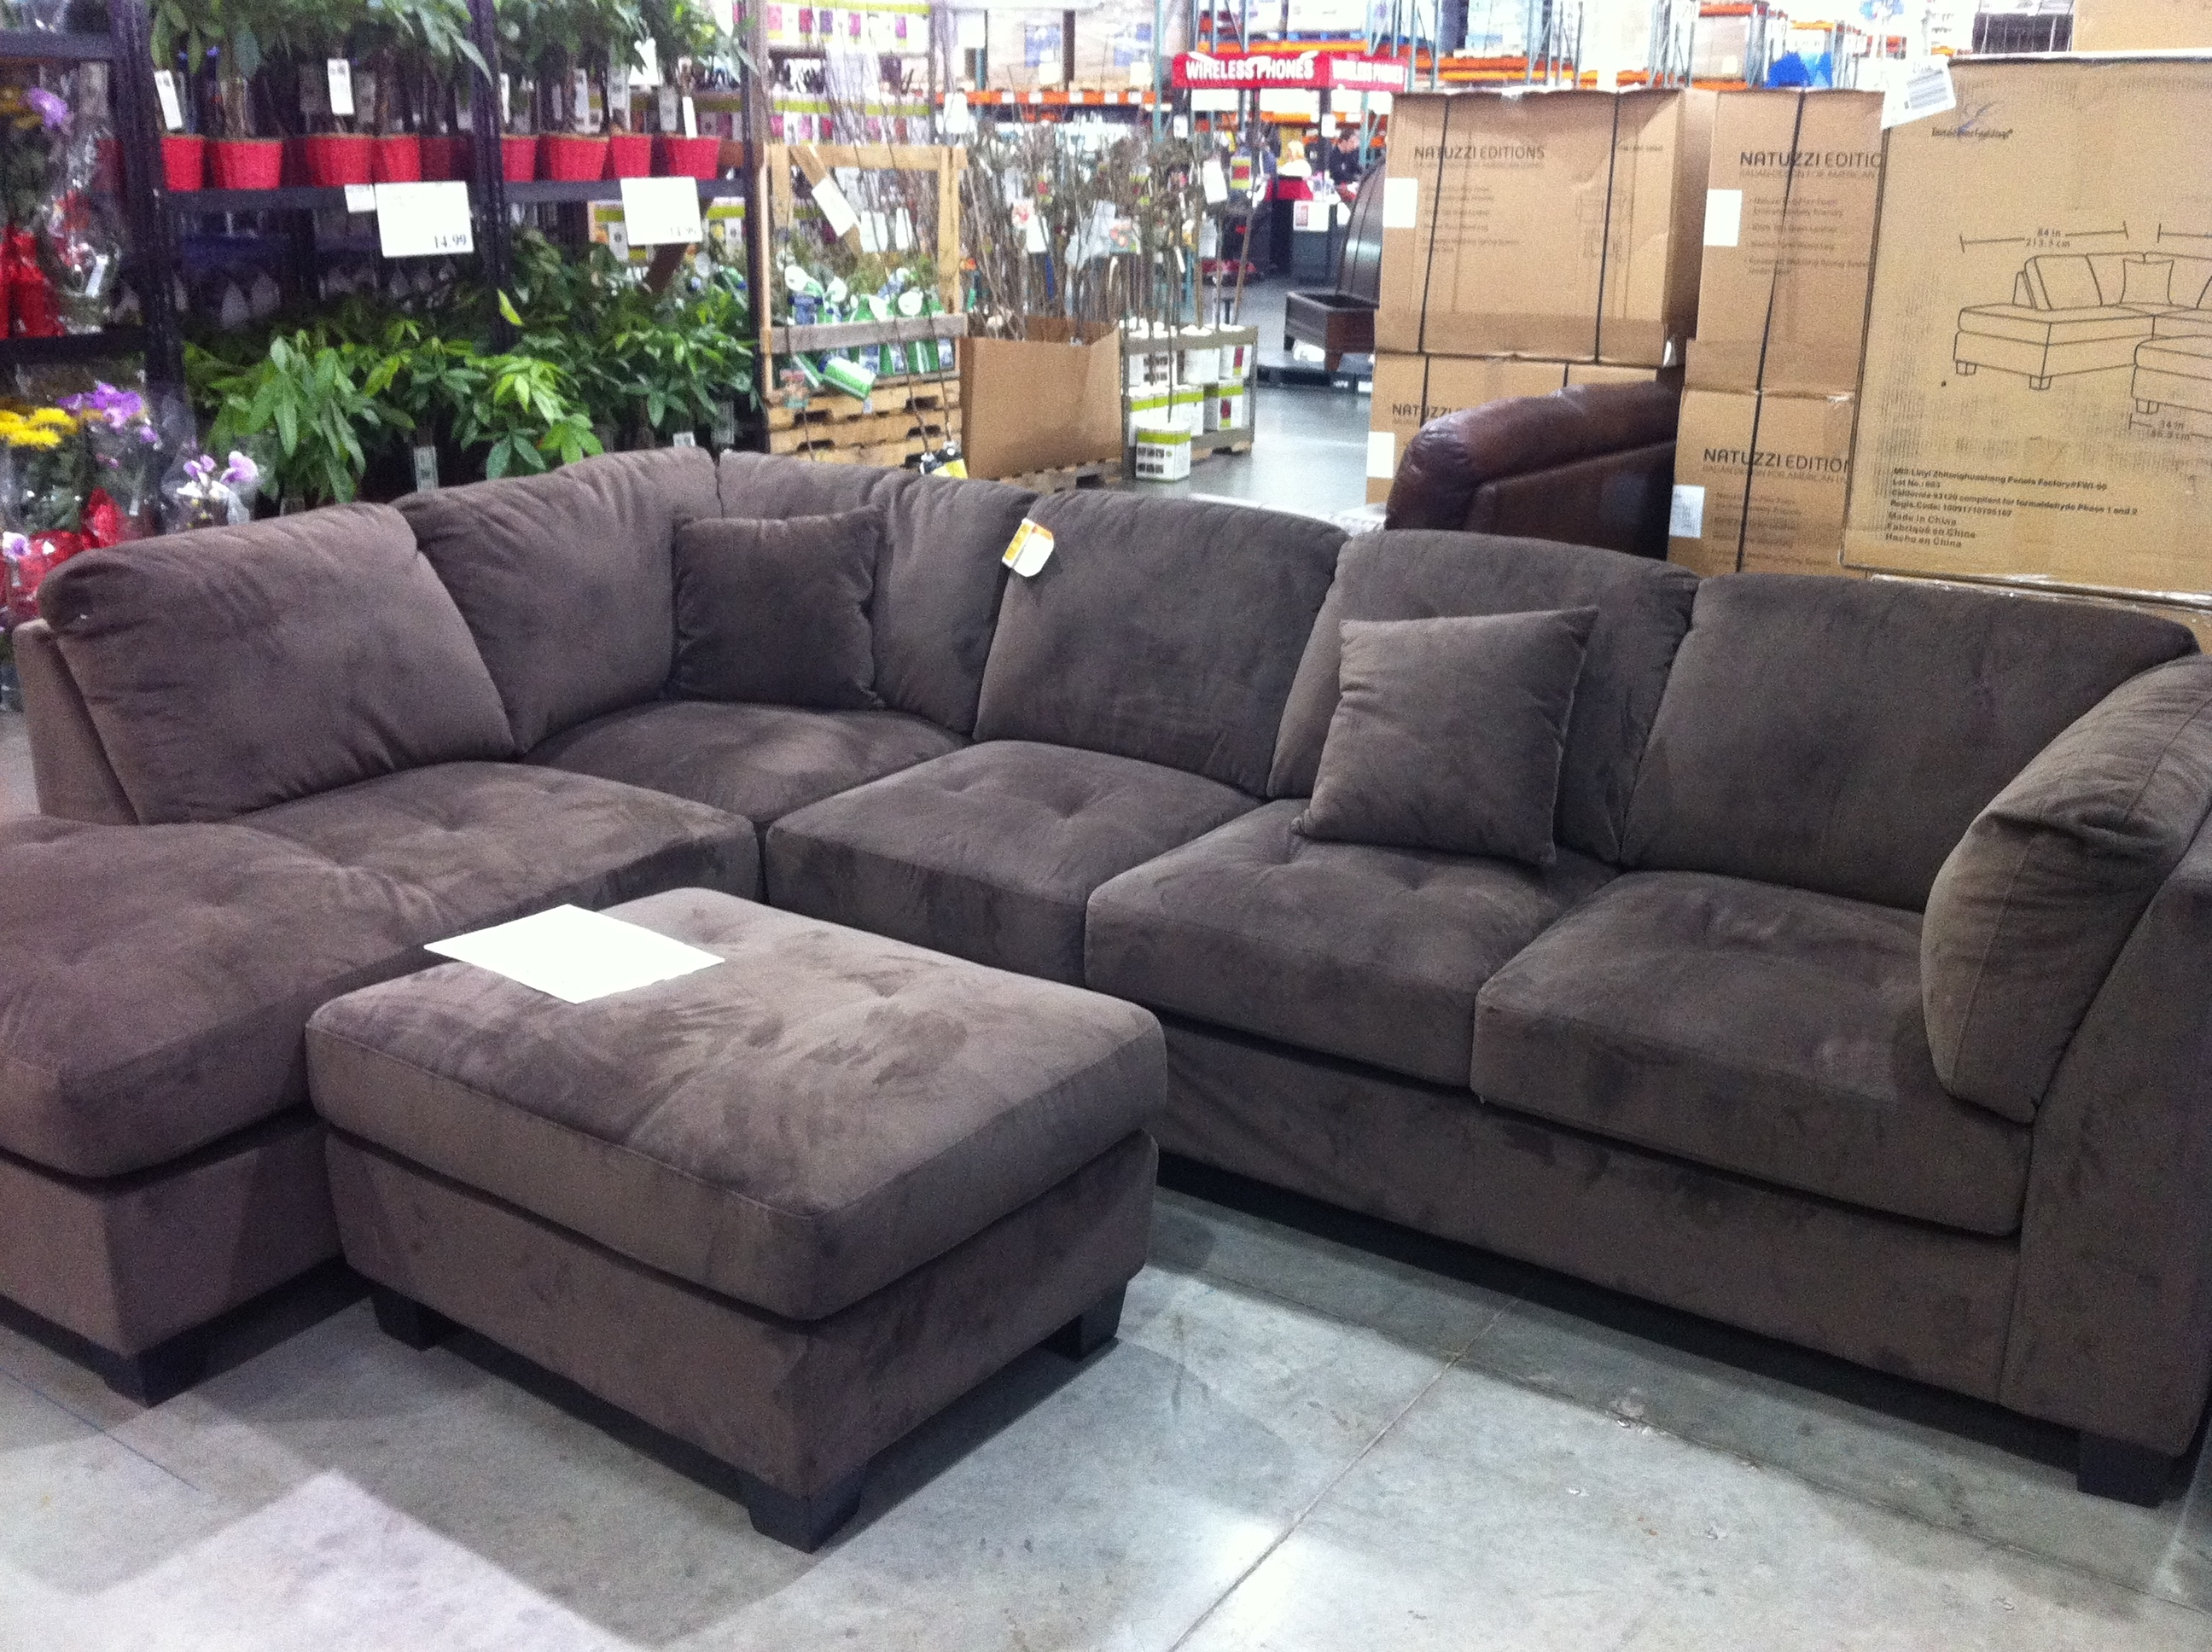 Lovely Costco Furniture Sofa With Furniture Costco Sectional Sofa Regarding Sectional Sofas At Costco (View 7 of 10)